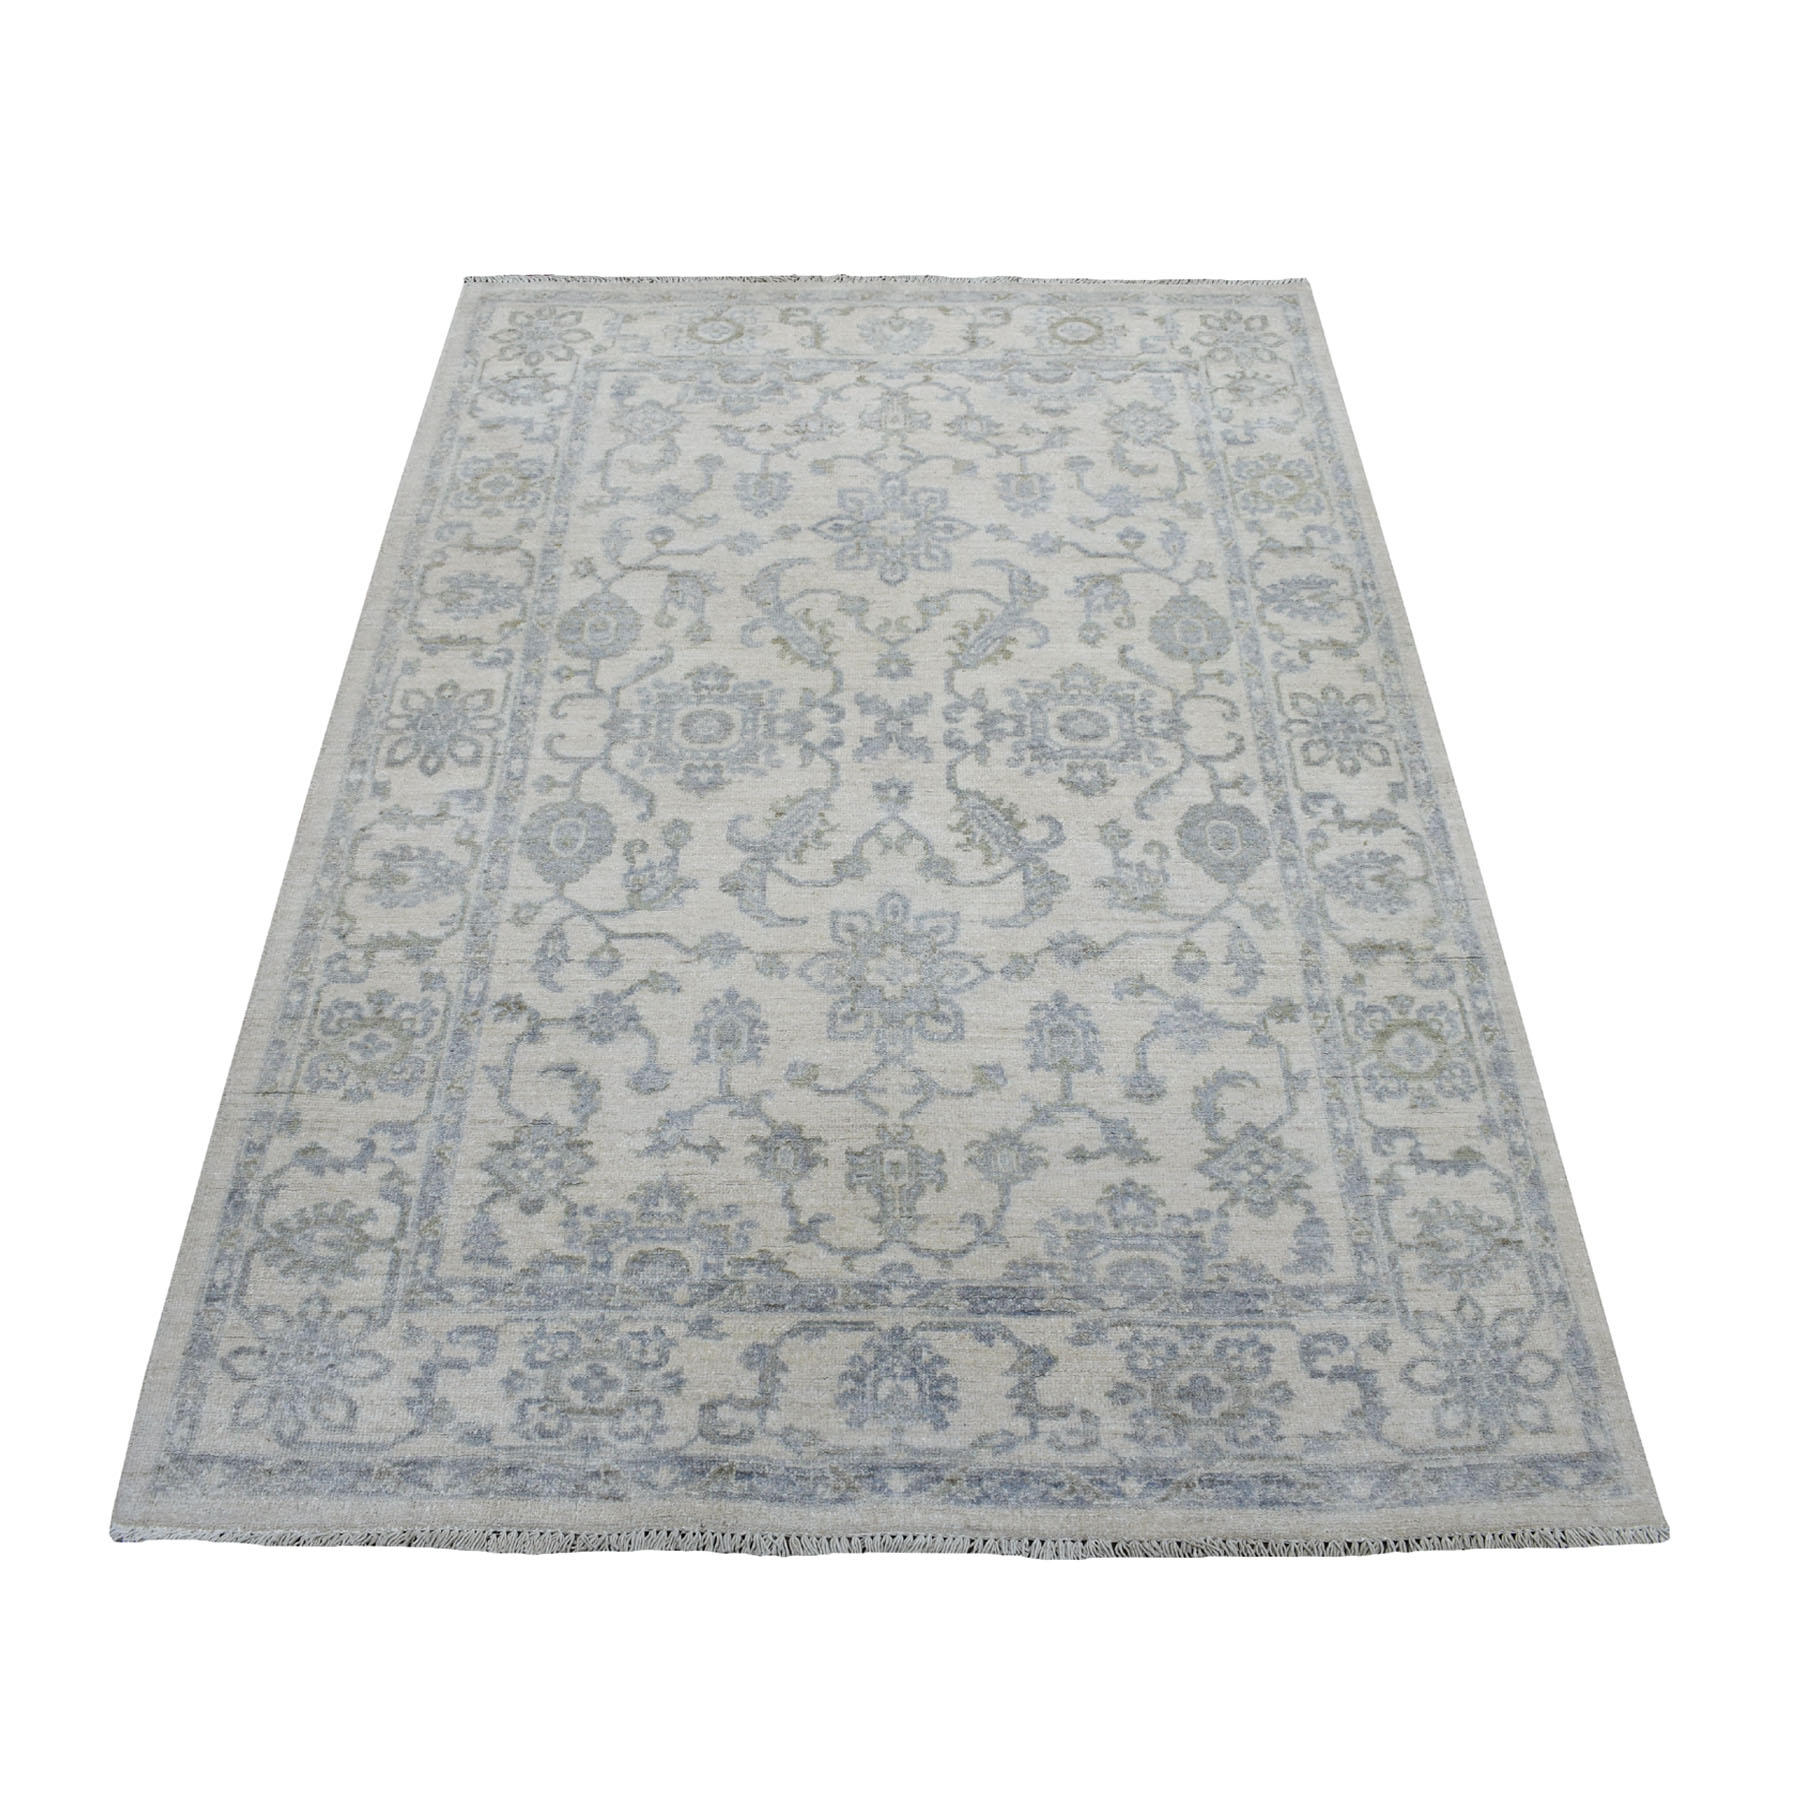 "4'X5'9"" White Wash Peshawar Mahal Design Pure Wool Hand Knotted Oriental Rug moaec9c0"